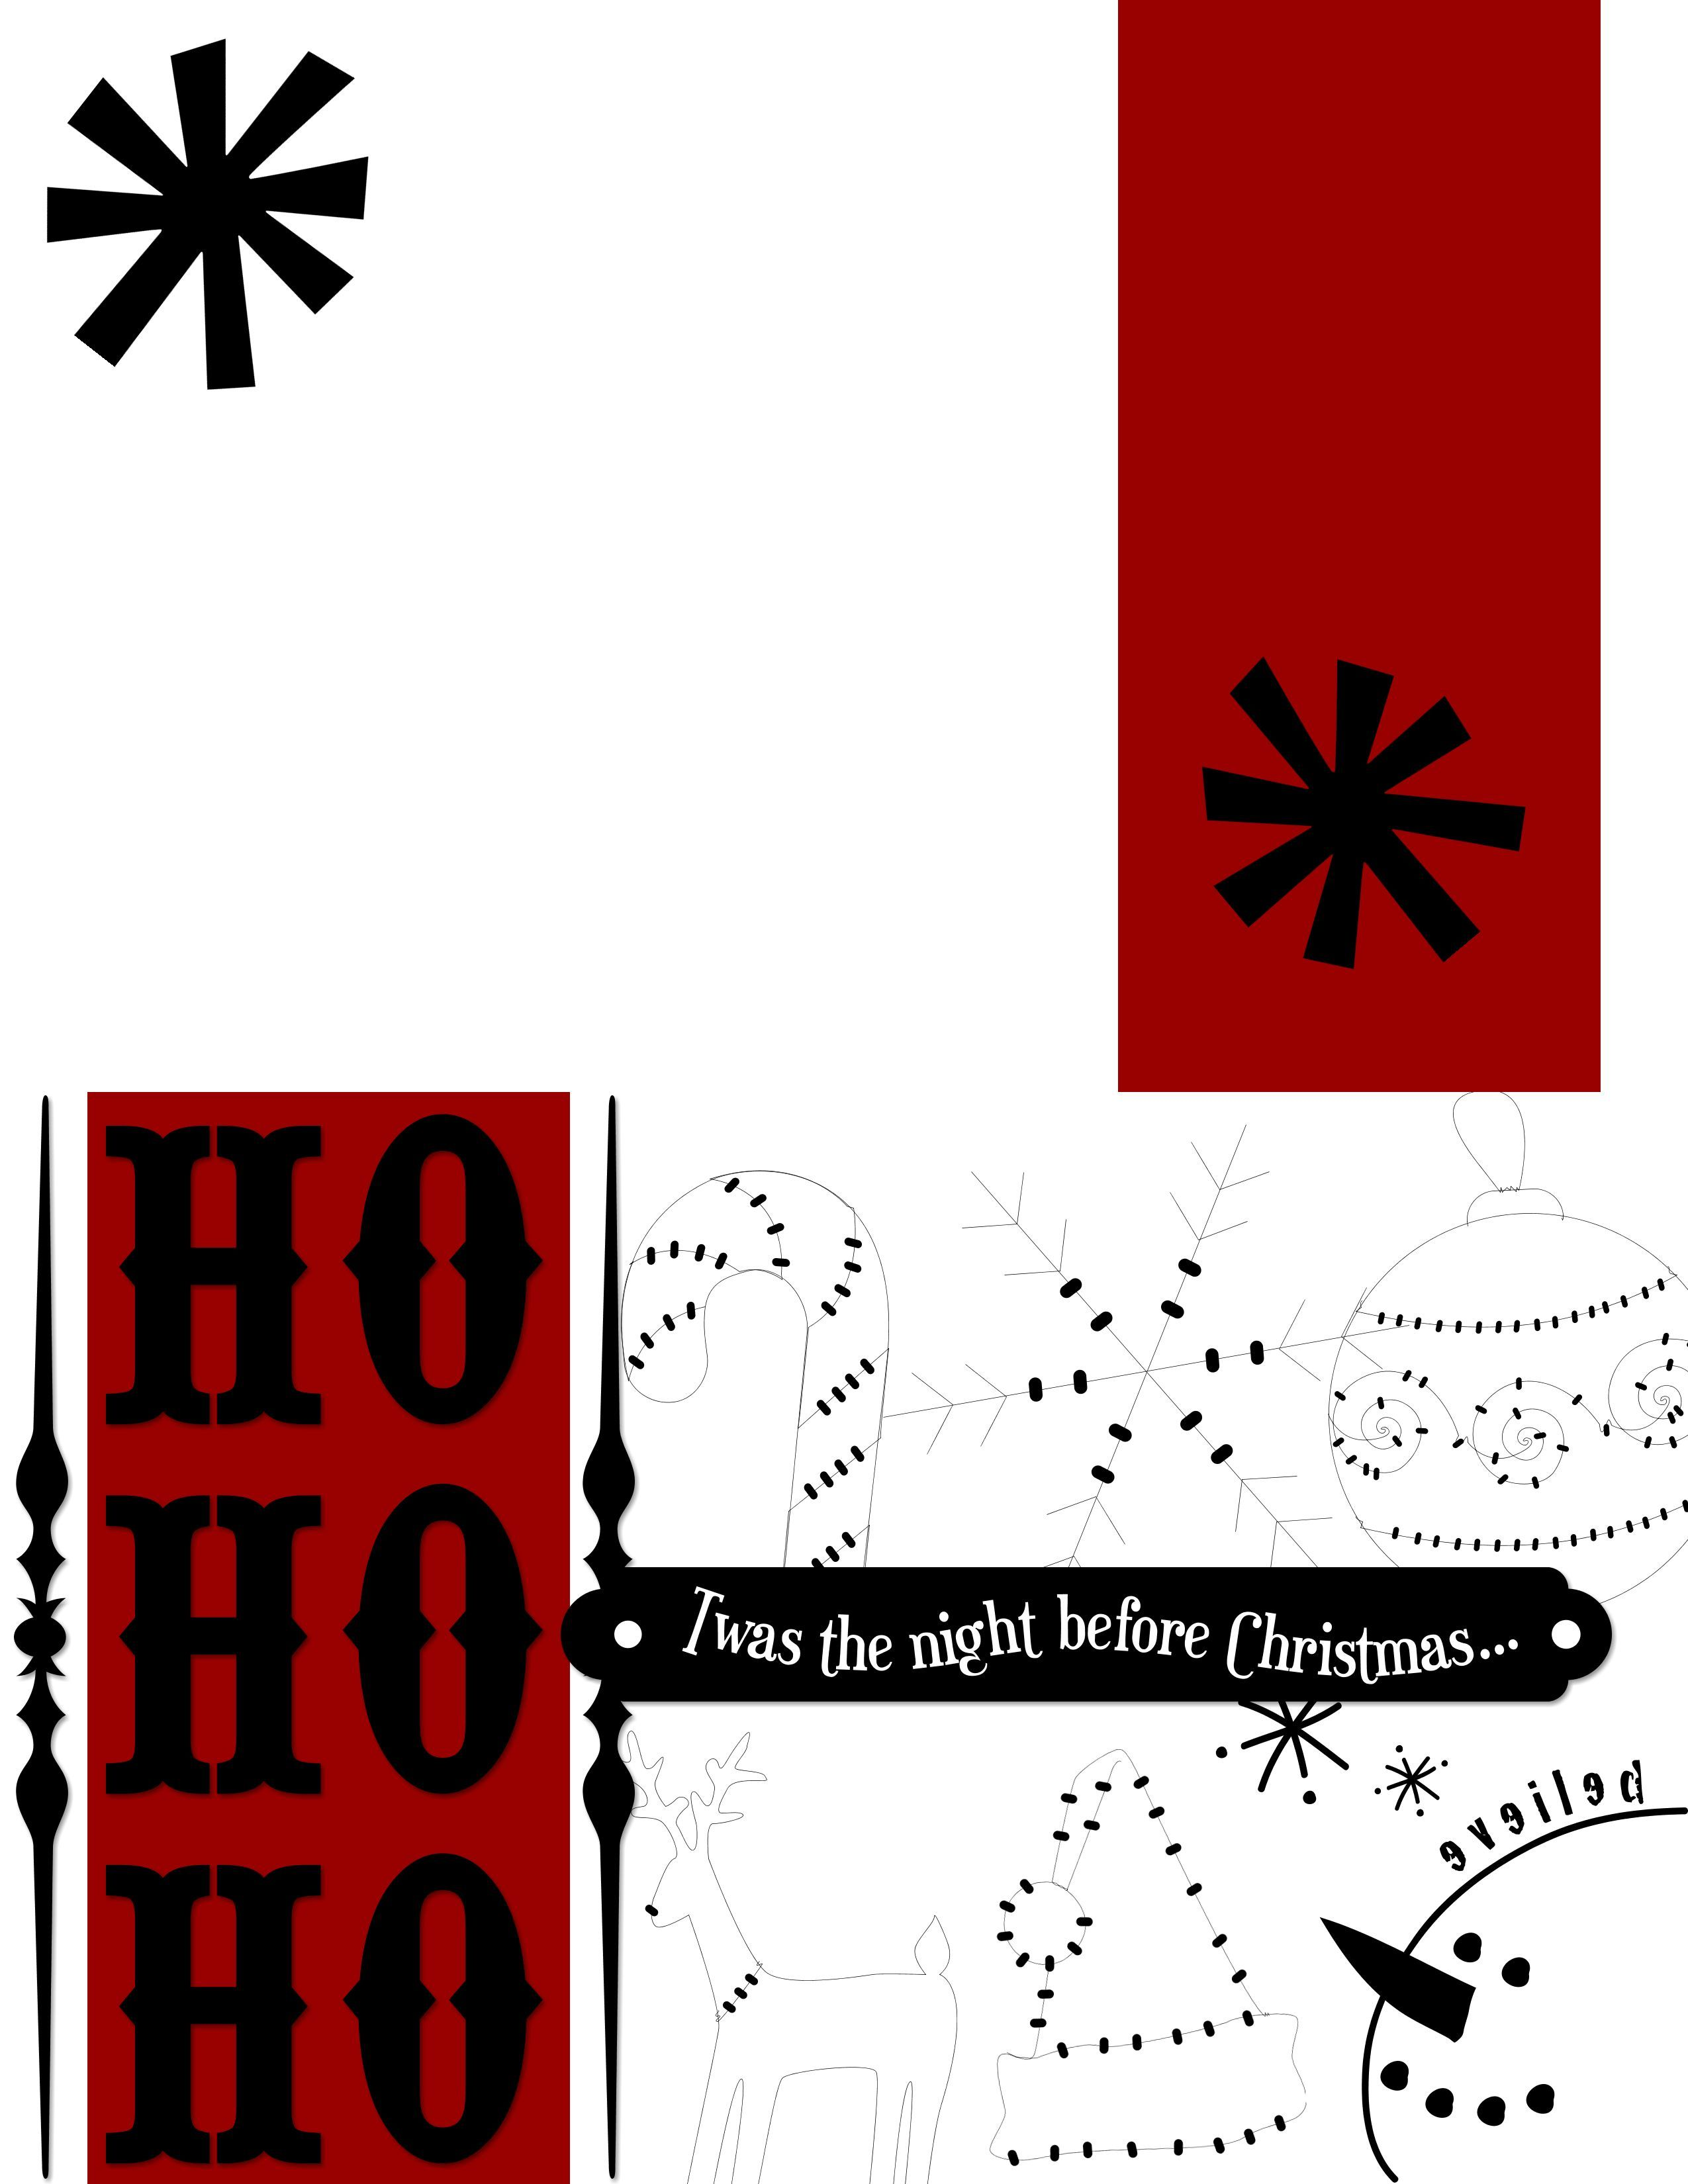 Cute Christmas Card For Friends And Family Diy Crafts That I